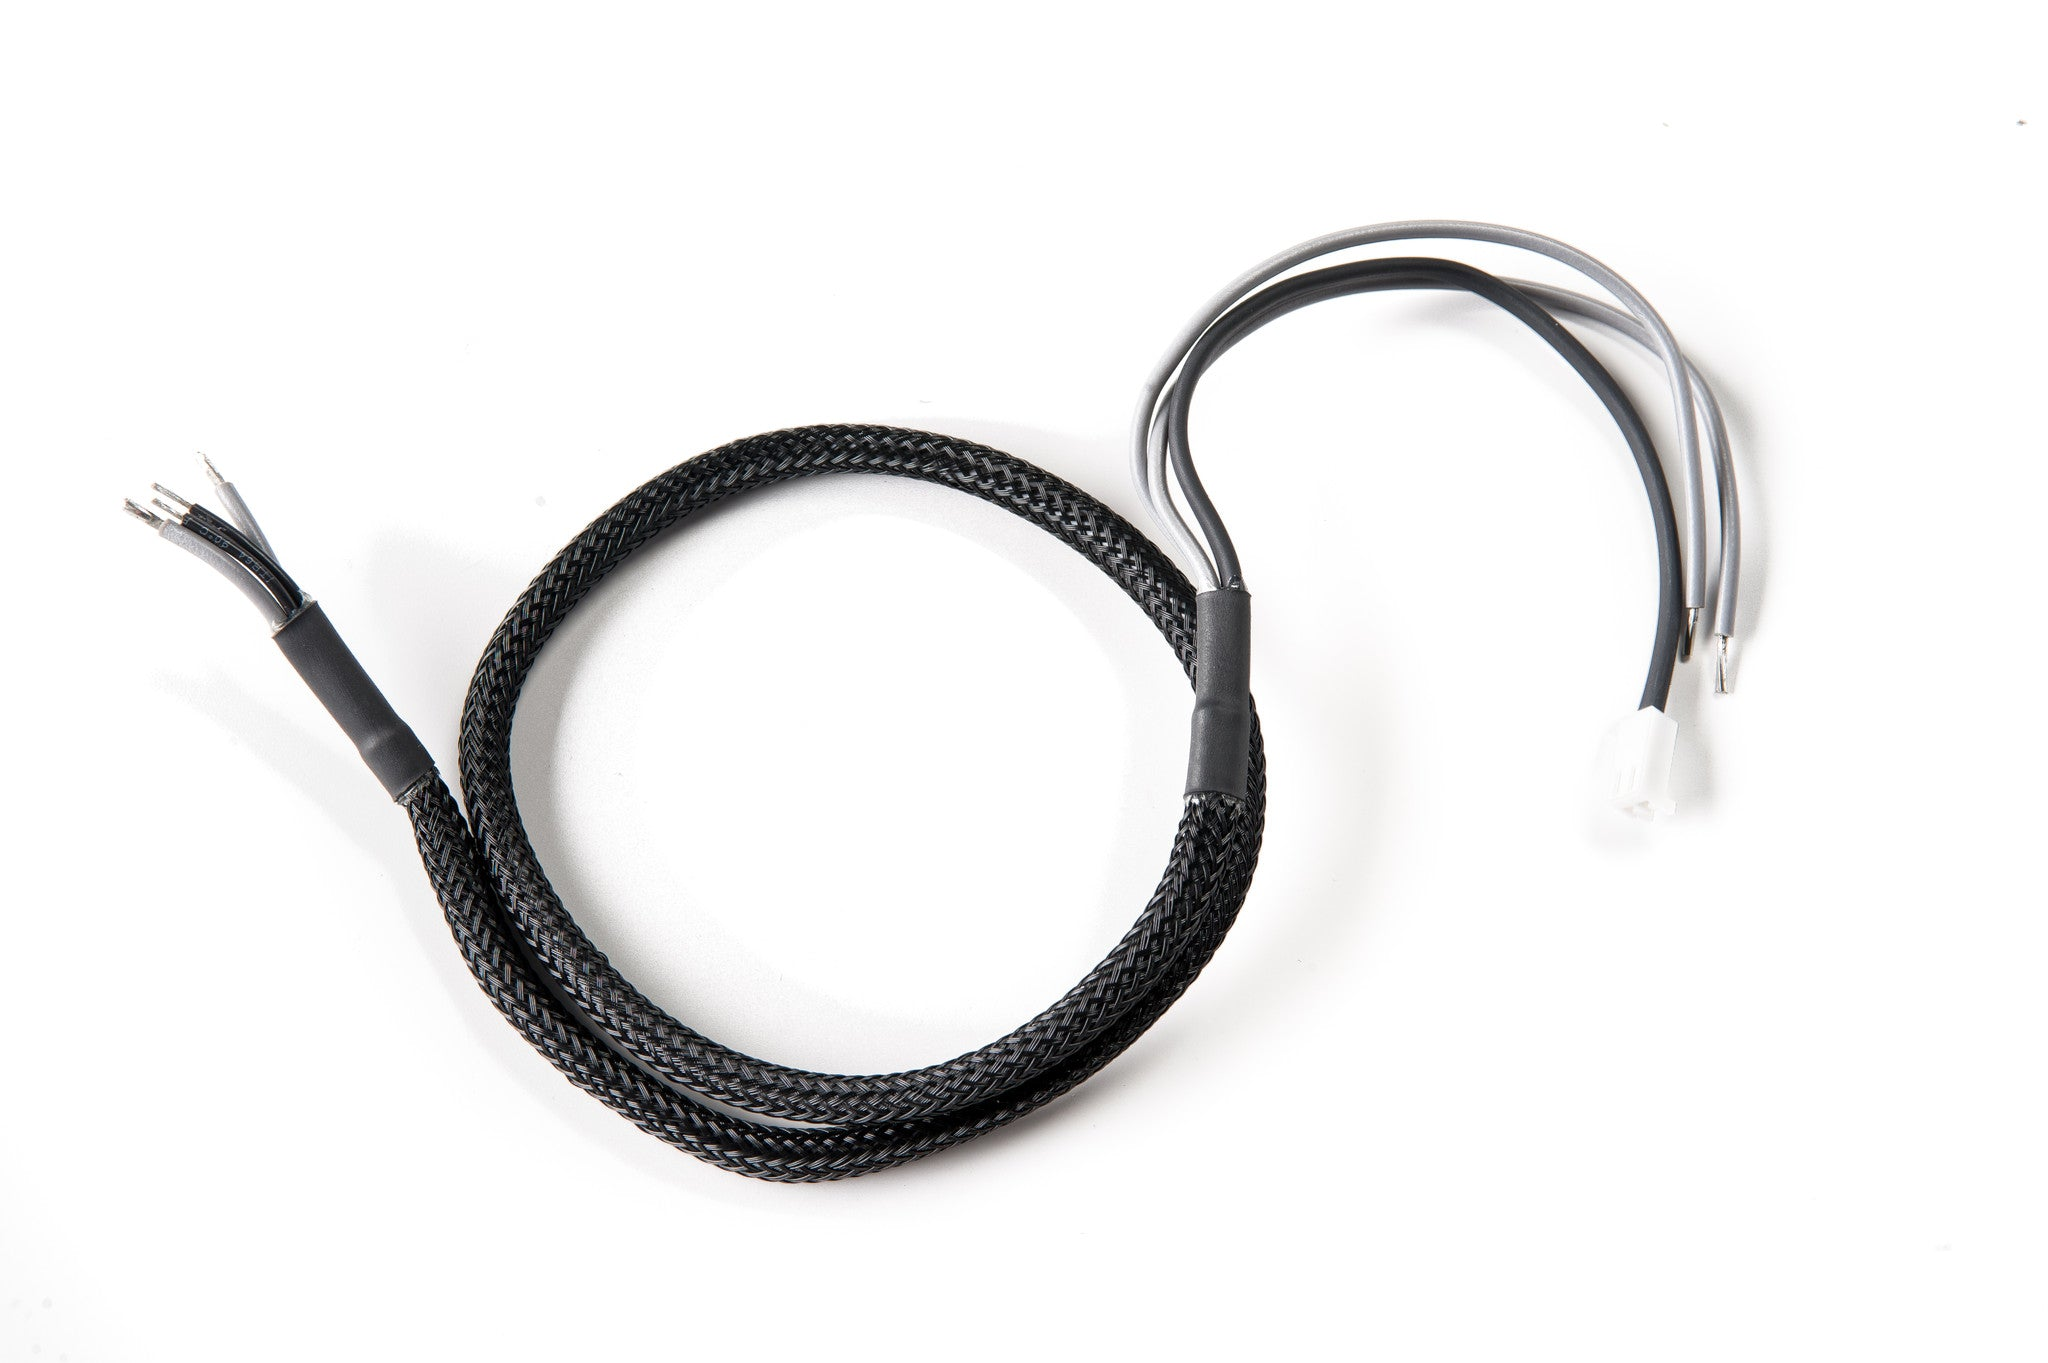 UM2 (1183) Heated Bed Cable - Ultimaker